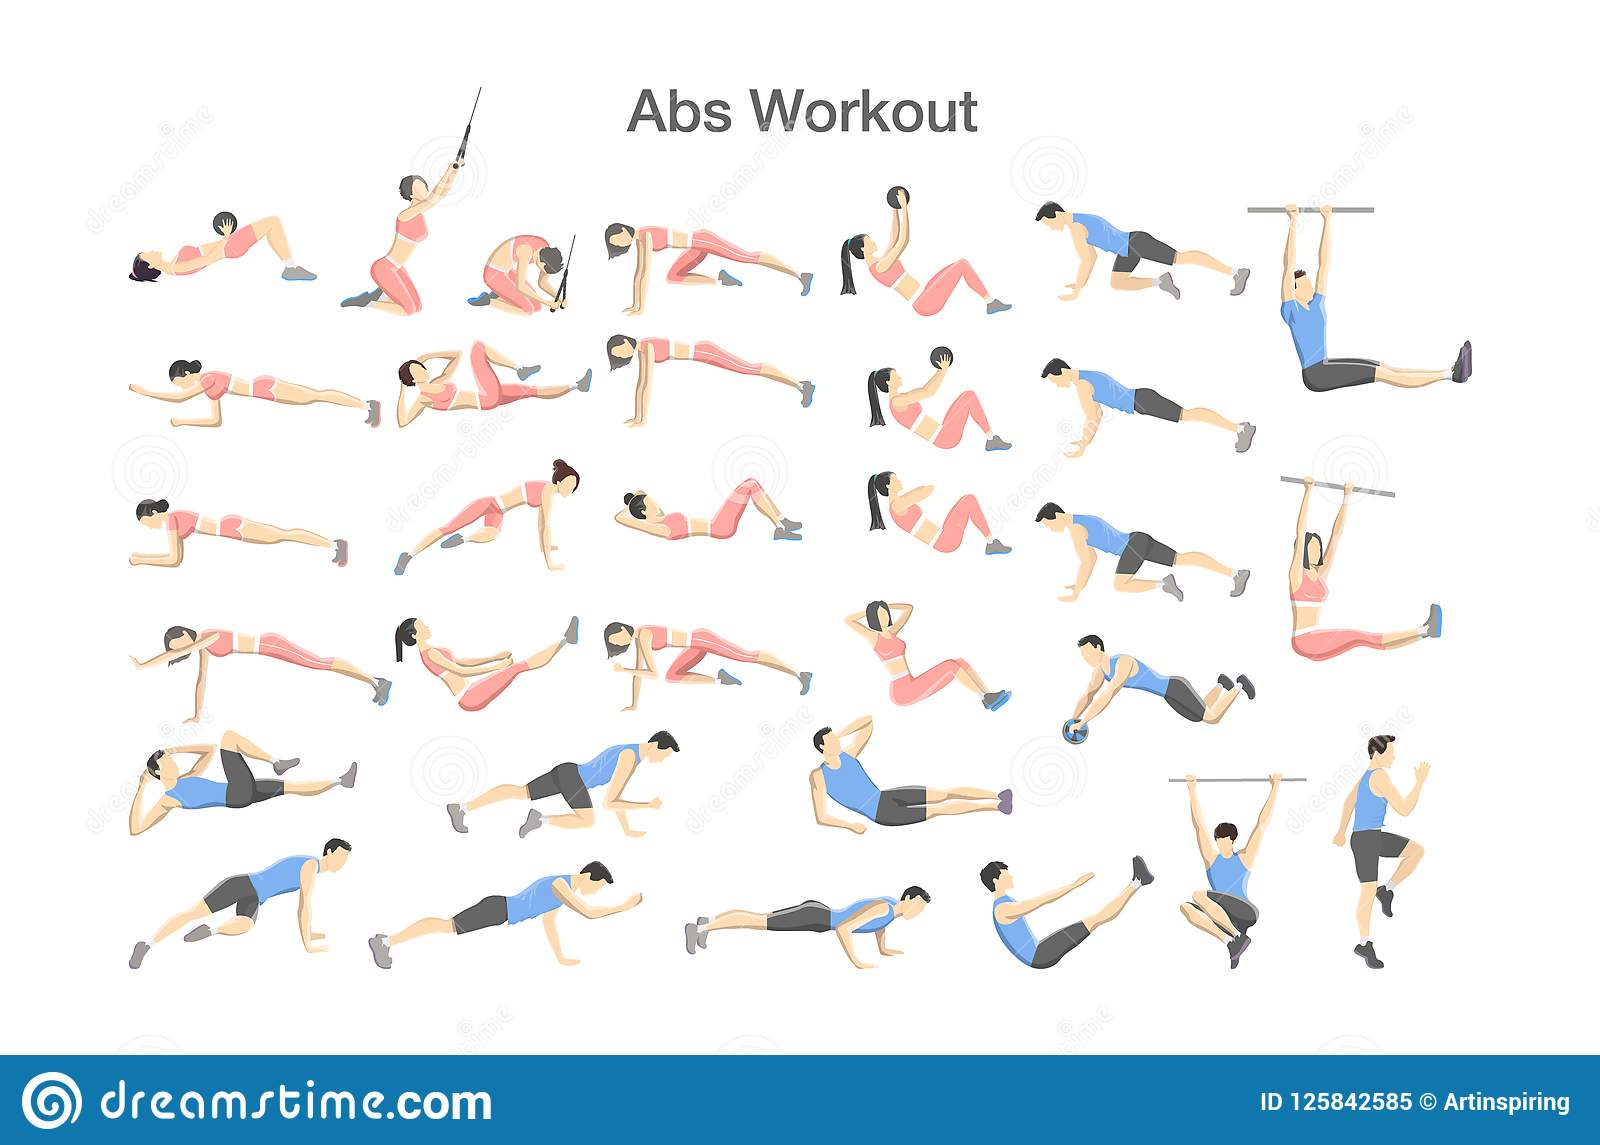 Abs Workout For Men And Women Sport Exercises Stock